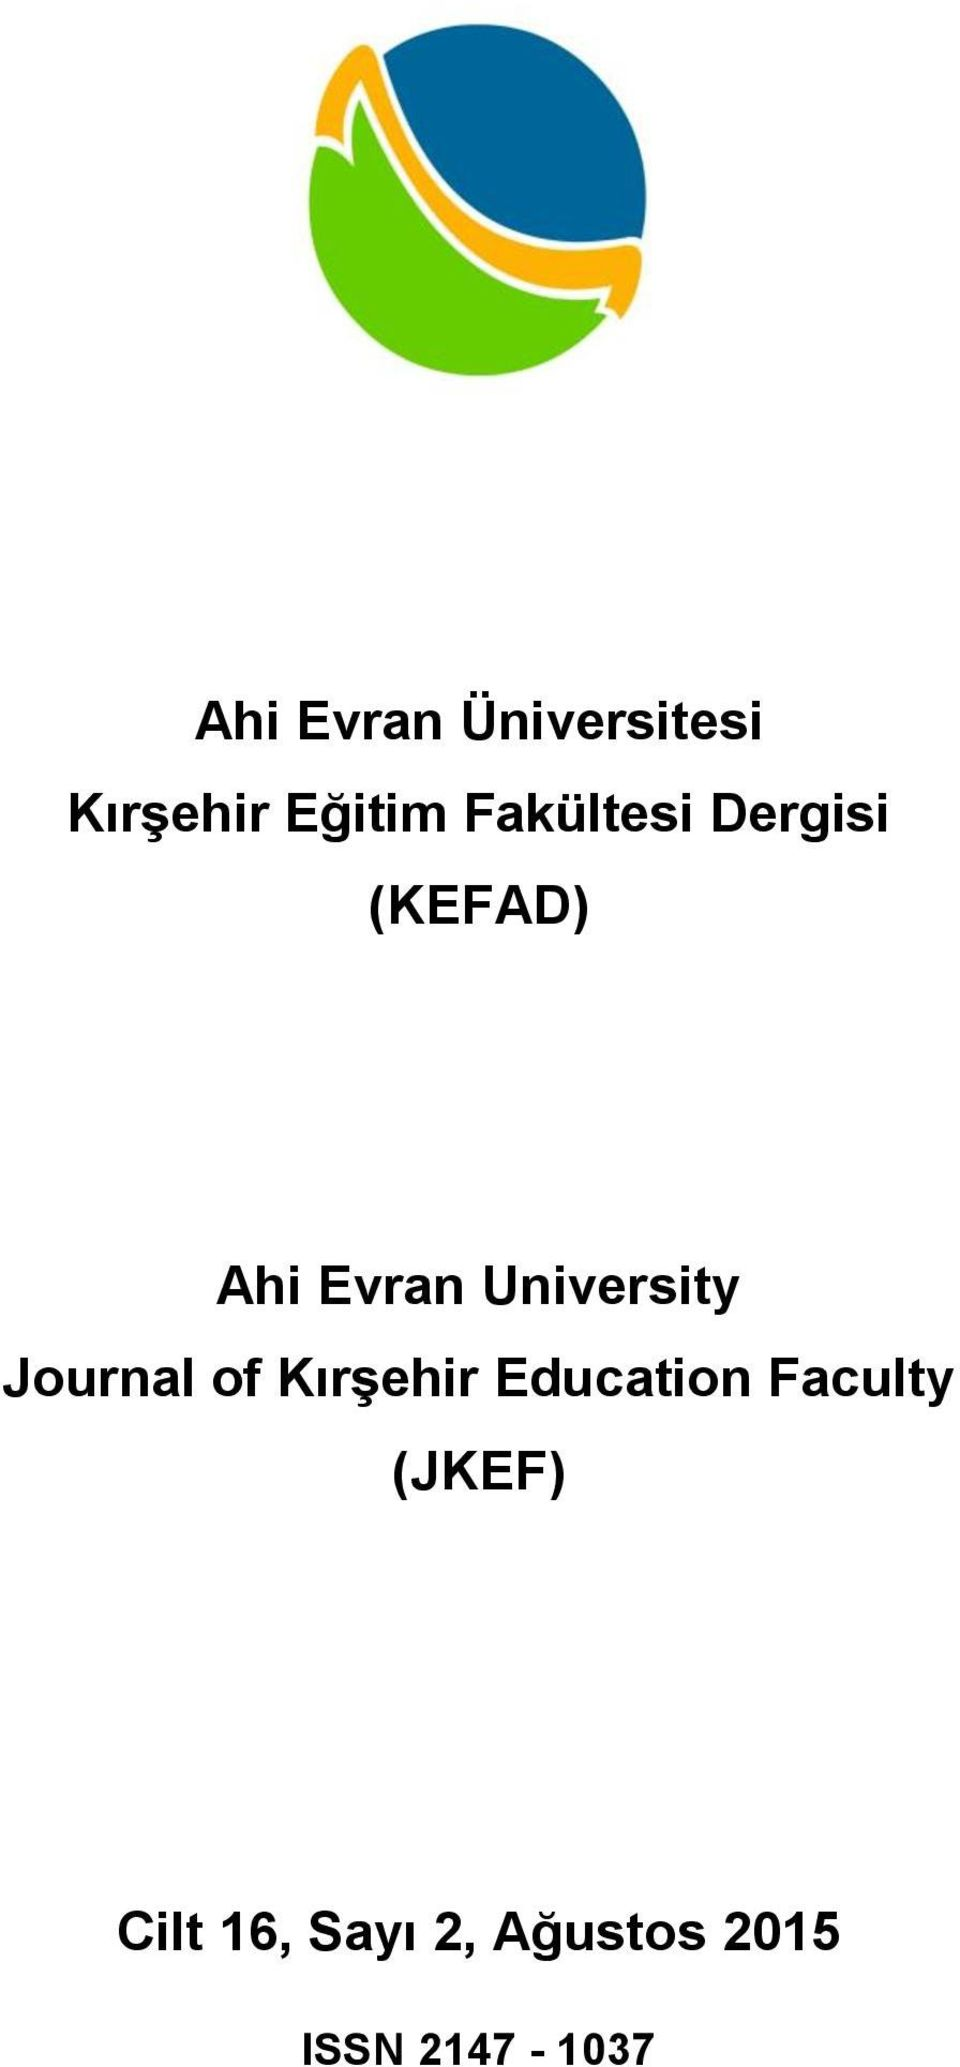 of Kırşehir Education Faculty (JKEF)